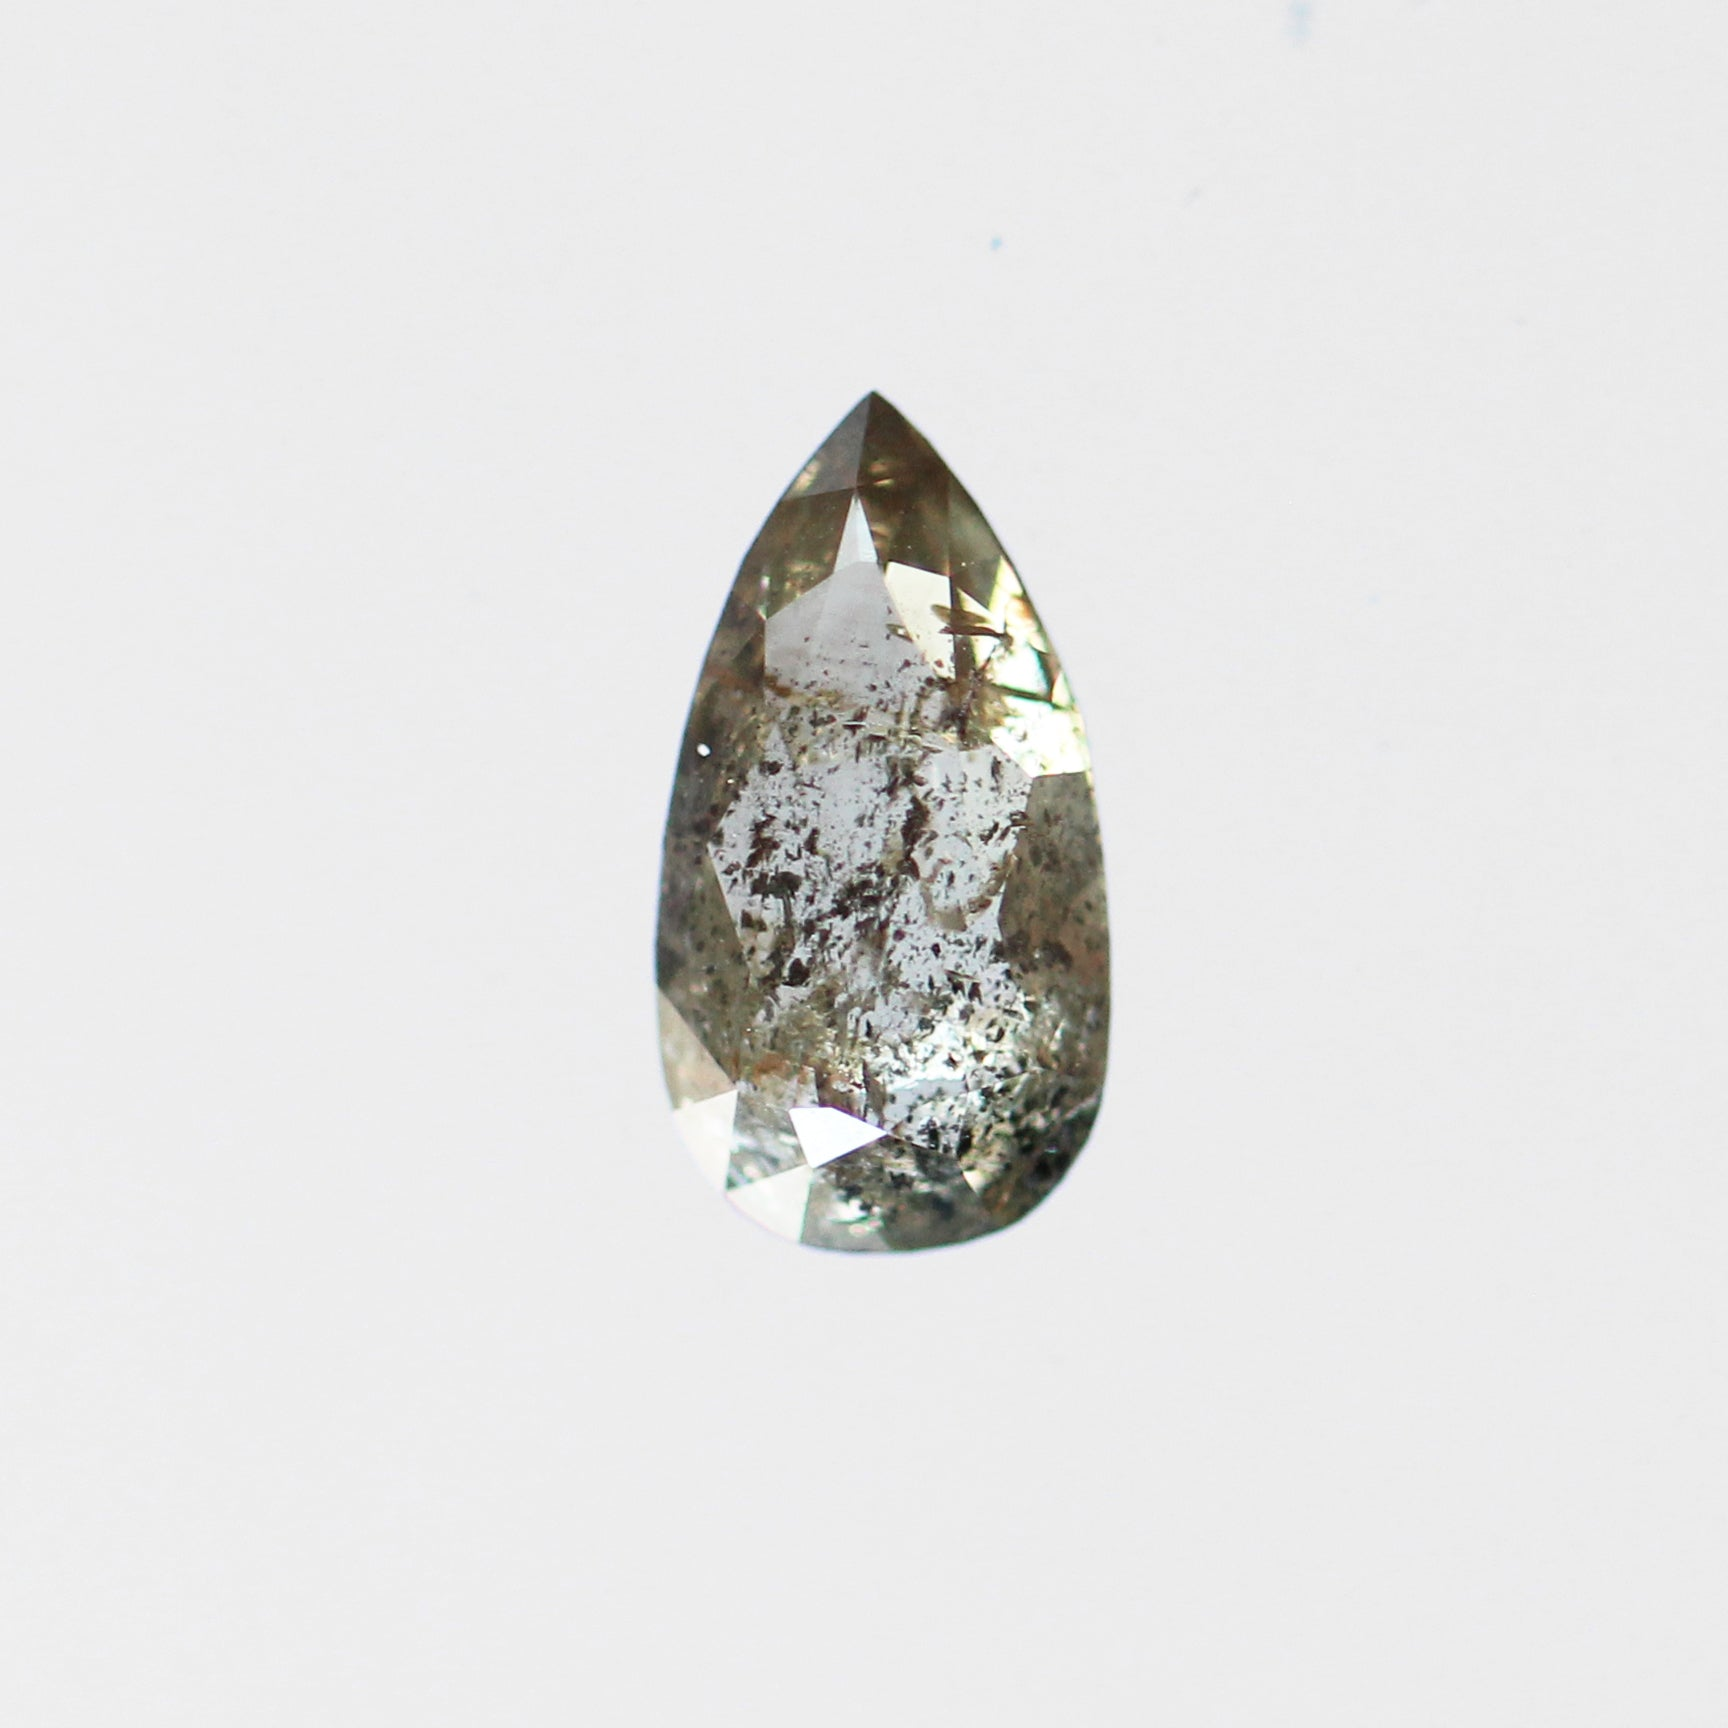 1.15 Carat Pear Celestial Diamond® for Custom Work - Inventory Code PRSK115 - Celestial Diamonds ® by Midwinter Co.